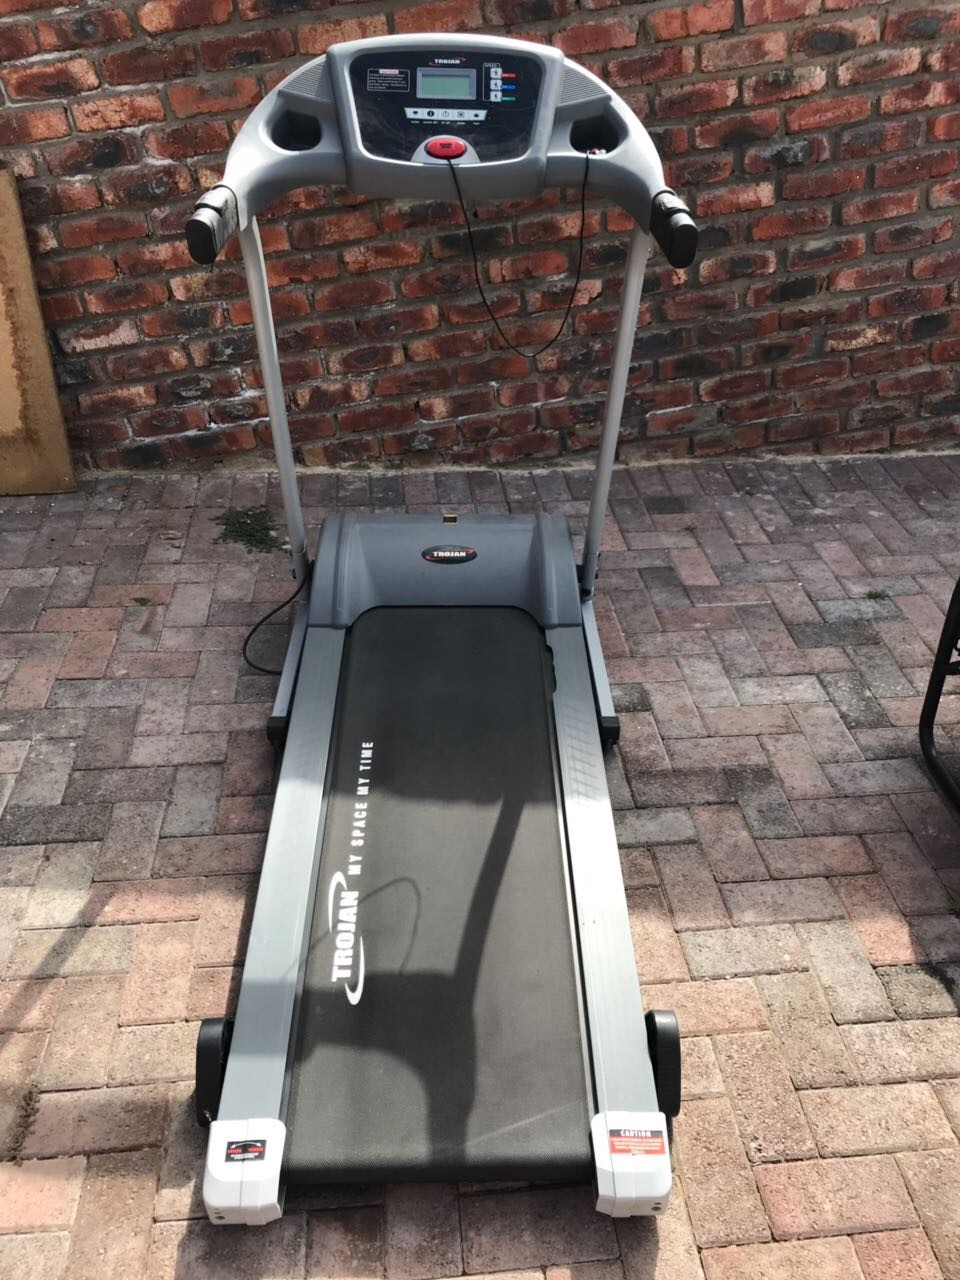 Like New Treadmill - Trojan Marathon 220 for sale - excellent condition - barely been used